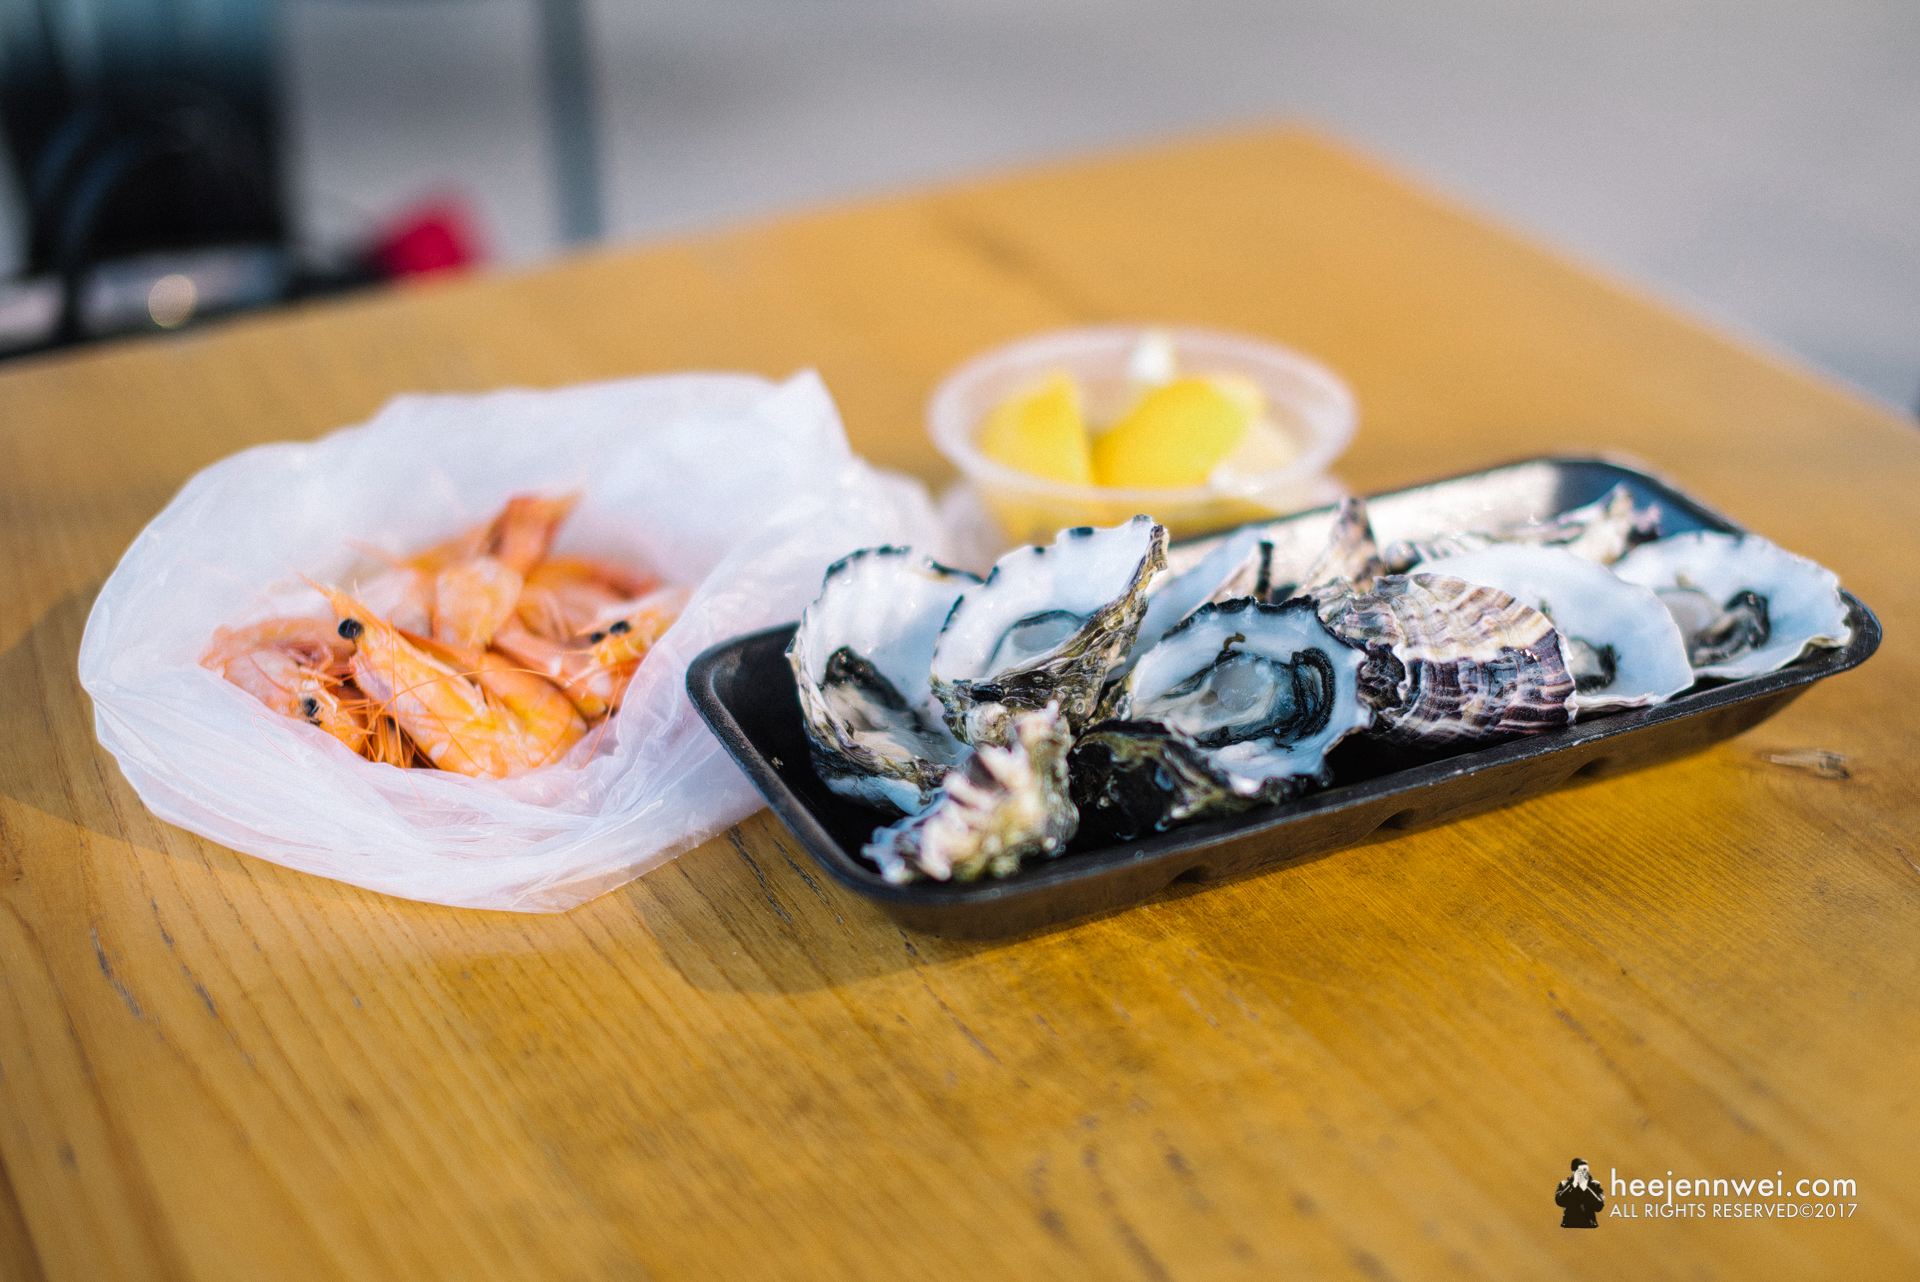 We got the fresh oysters and cooked prawns from the market retails for breakfast, super fresh and delicious!